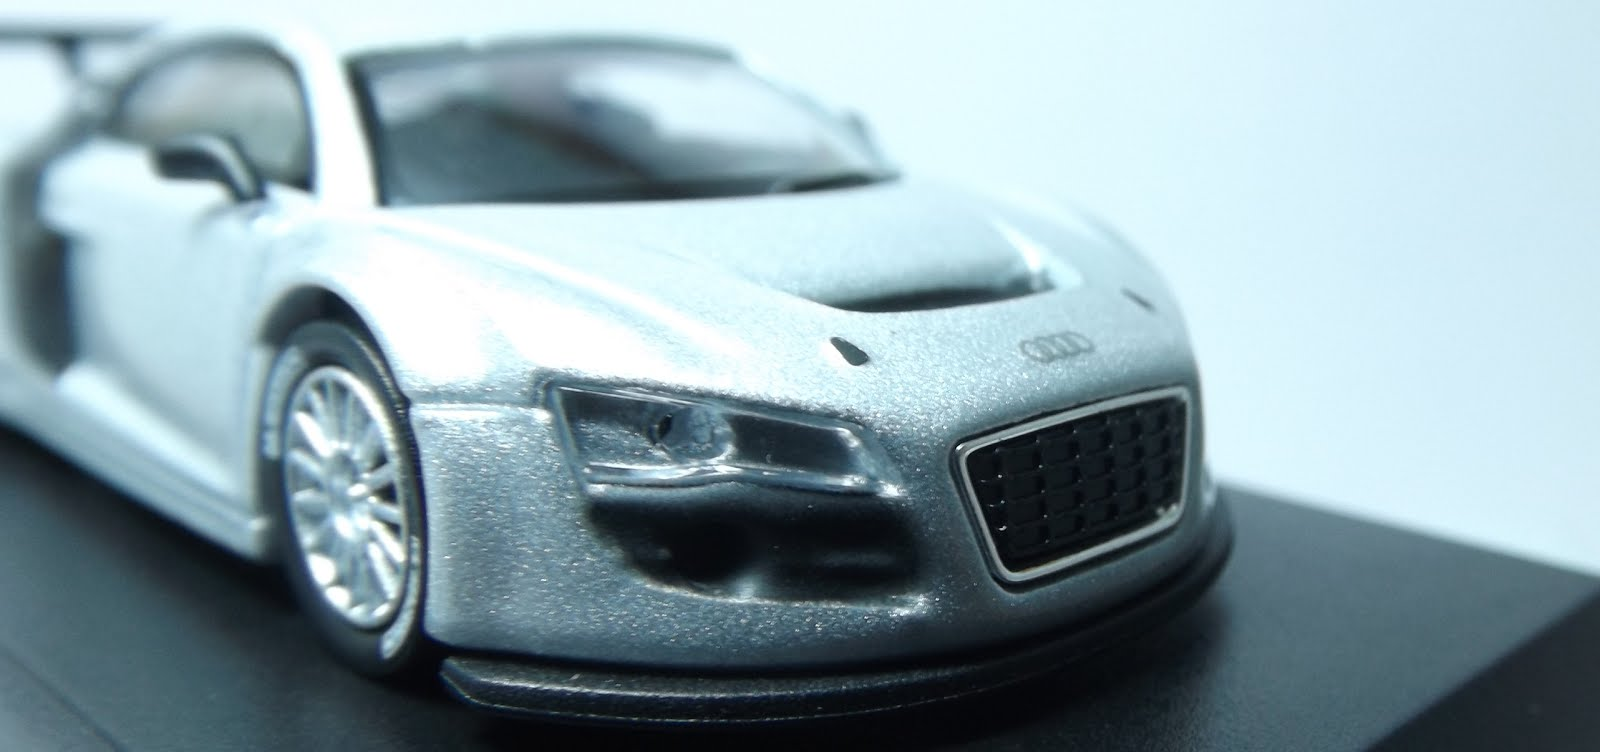 Diecast kyosho audi r8 lms low side